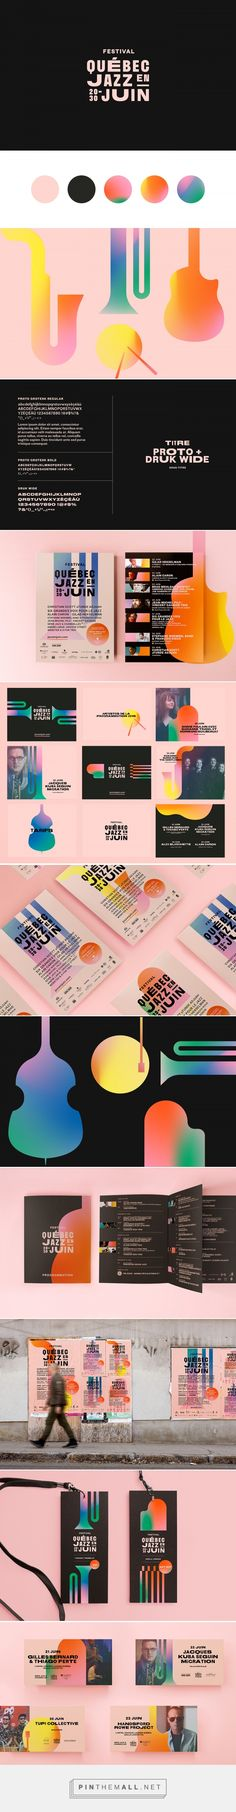 Best Brand Identity Designs Of The Week 12 – Graphic Design Inspiration Beste Markenidentitätsdesigns der Woche 12 – Grafikdesign-Inspiration Graphisches Design, Logo Design, Media Design, Label Design, Design Ideas, Corporate Event Design, Jazz, Brand Identity Design, Brand Design